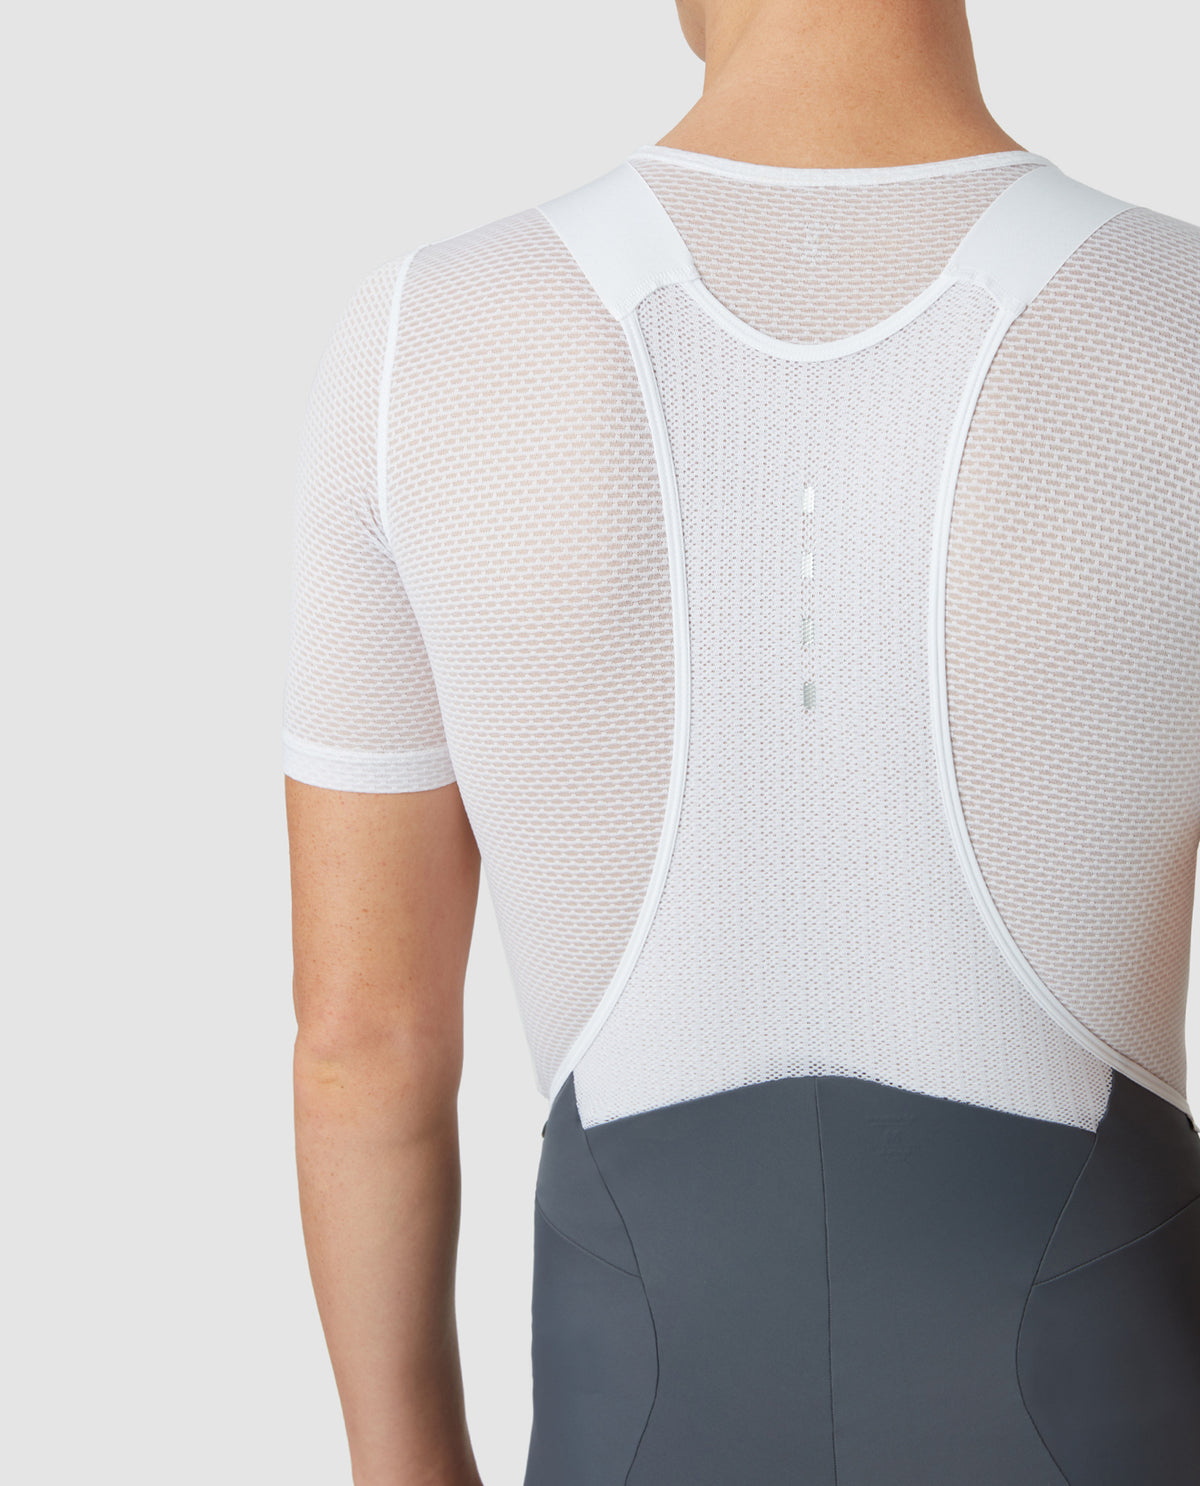 PSN Bib Shorts Grey